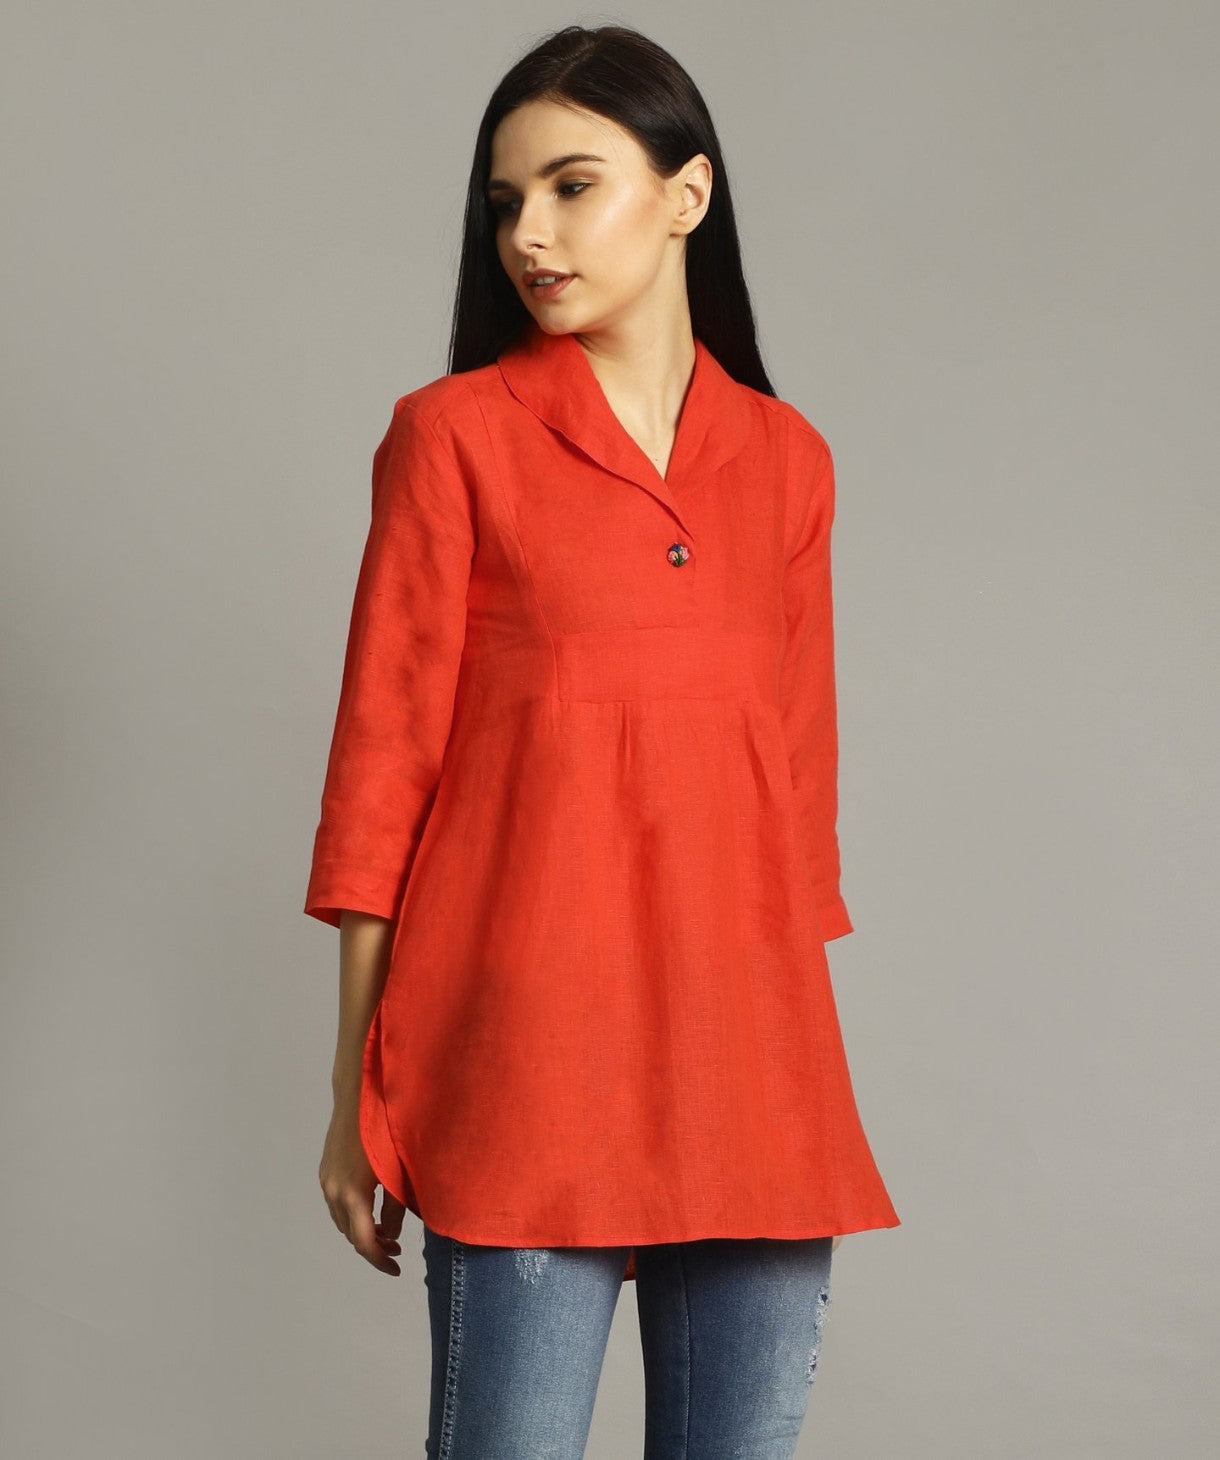 Uptownie Plus Coral Red High-Low Handloom Tunic - Uptownie